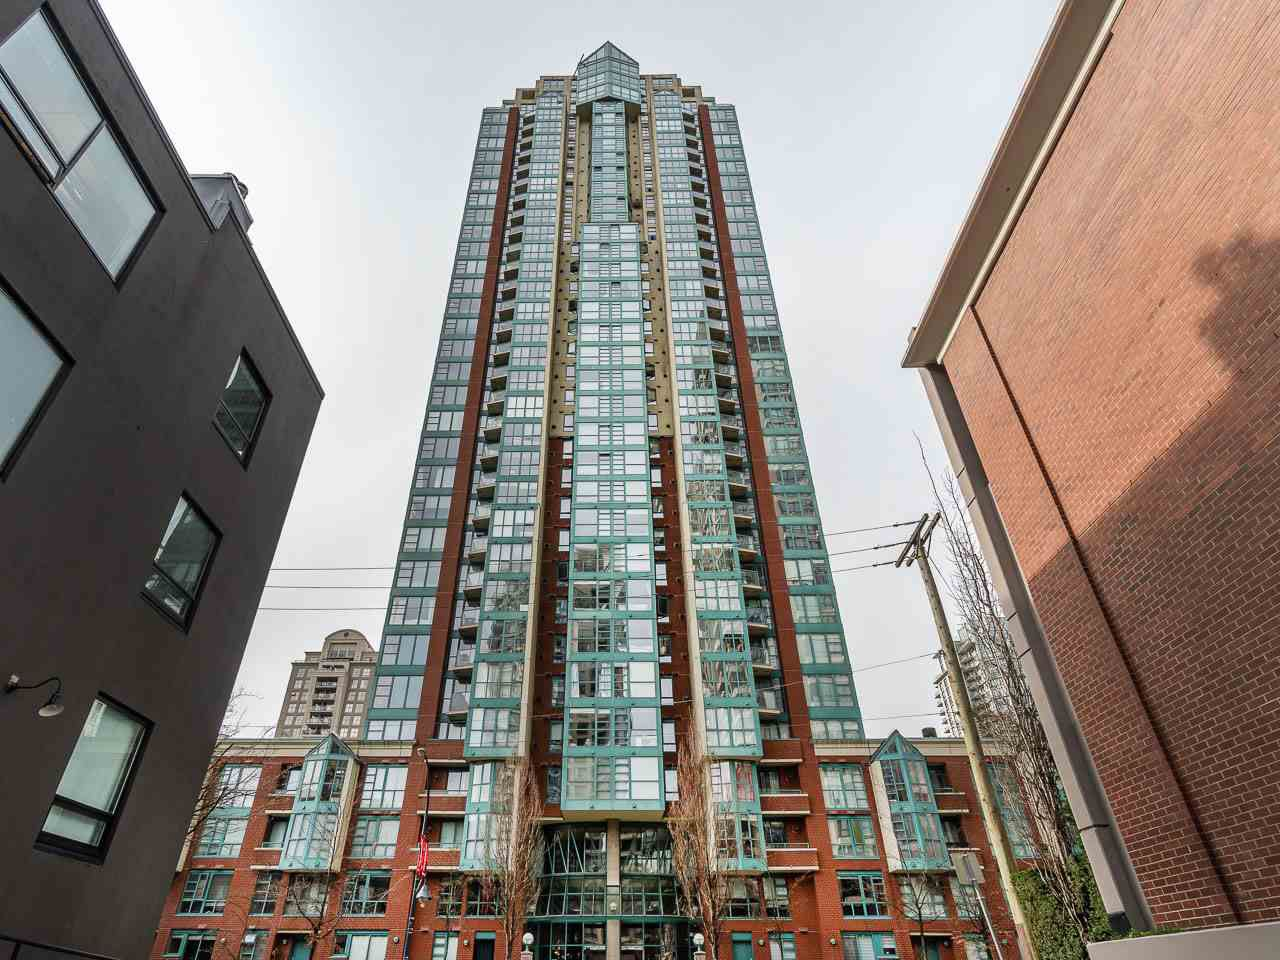 """Main Photo: 1605 939 HOMER Street in Vancouver: Yaletown Condo for sale in """"The Pinnacle"""" (Vancouver West)  : MLS®# R2255637"""